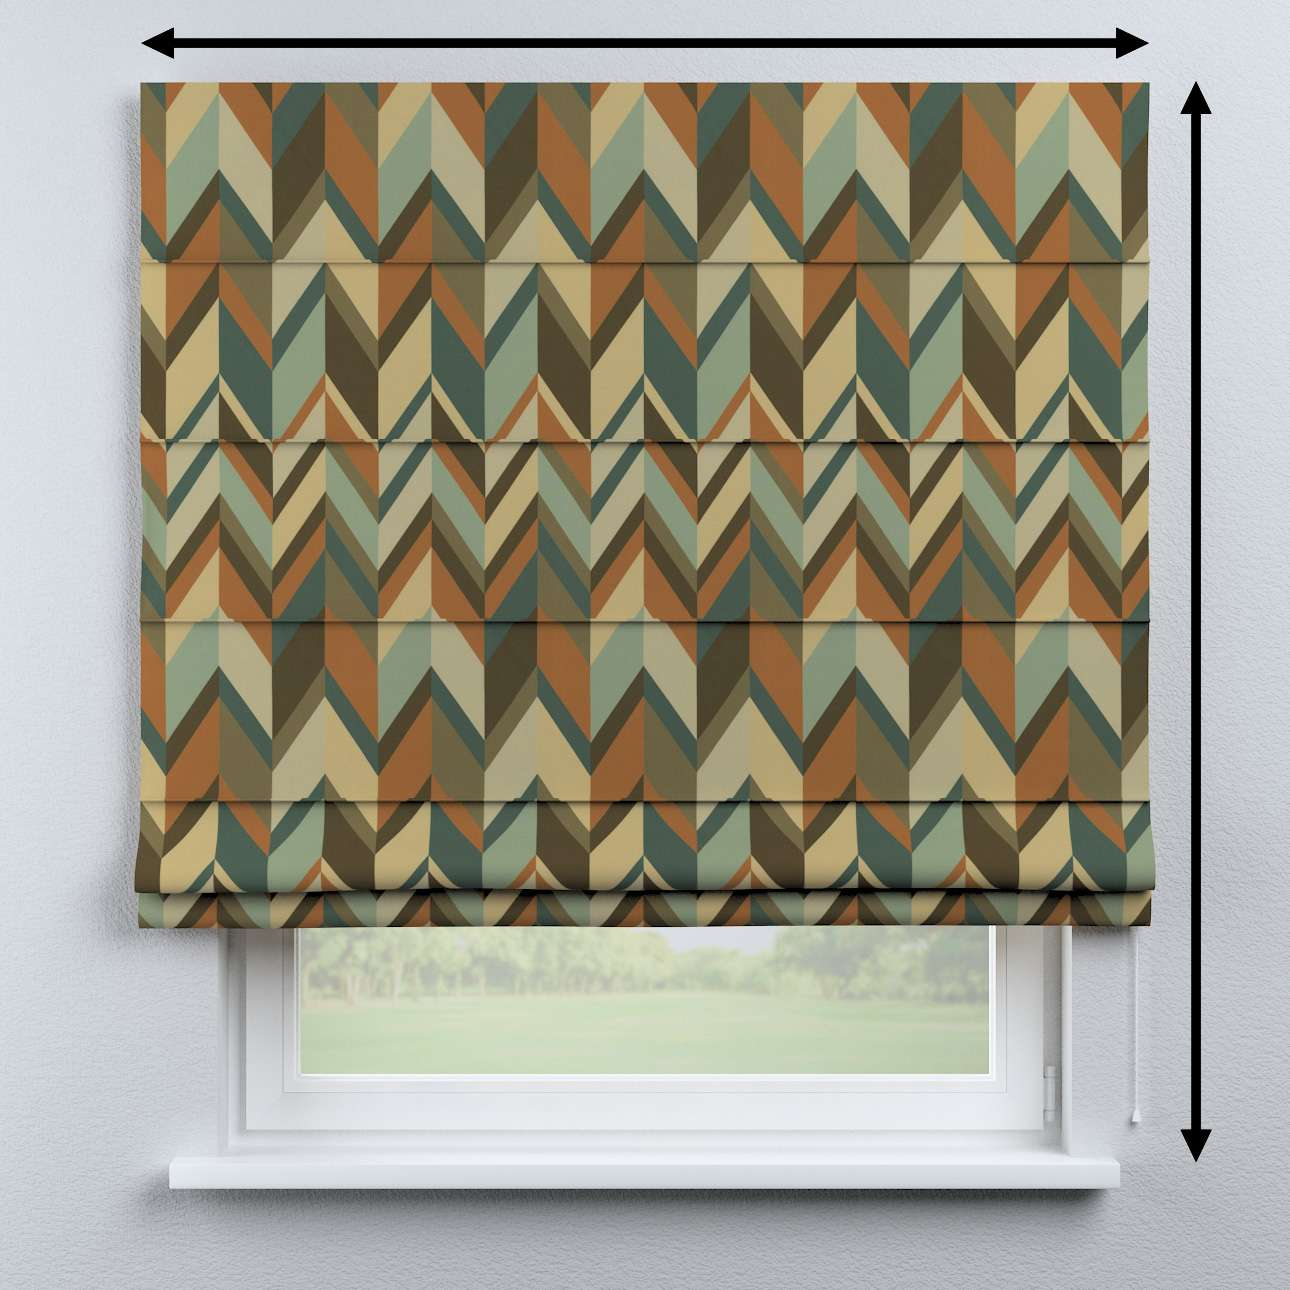 Capri roman blind in collection Vintage 70's, fabric: 143-55